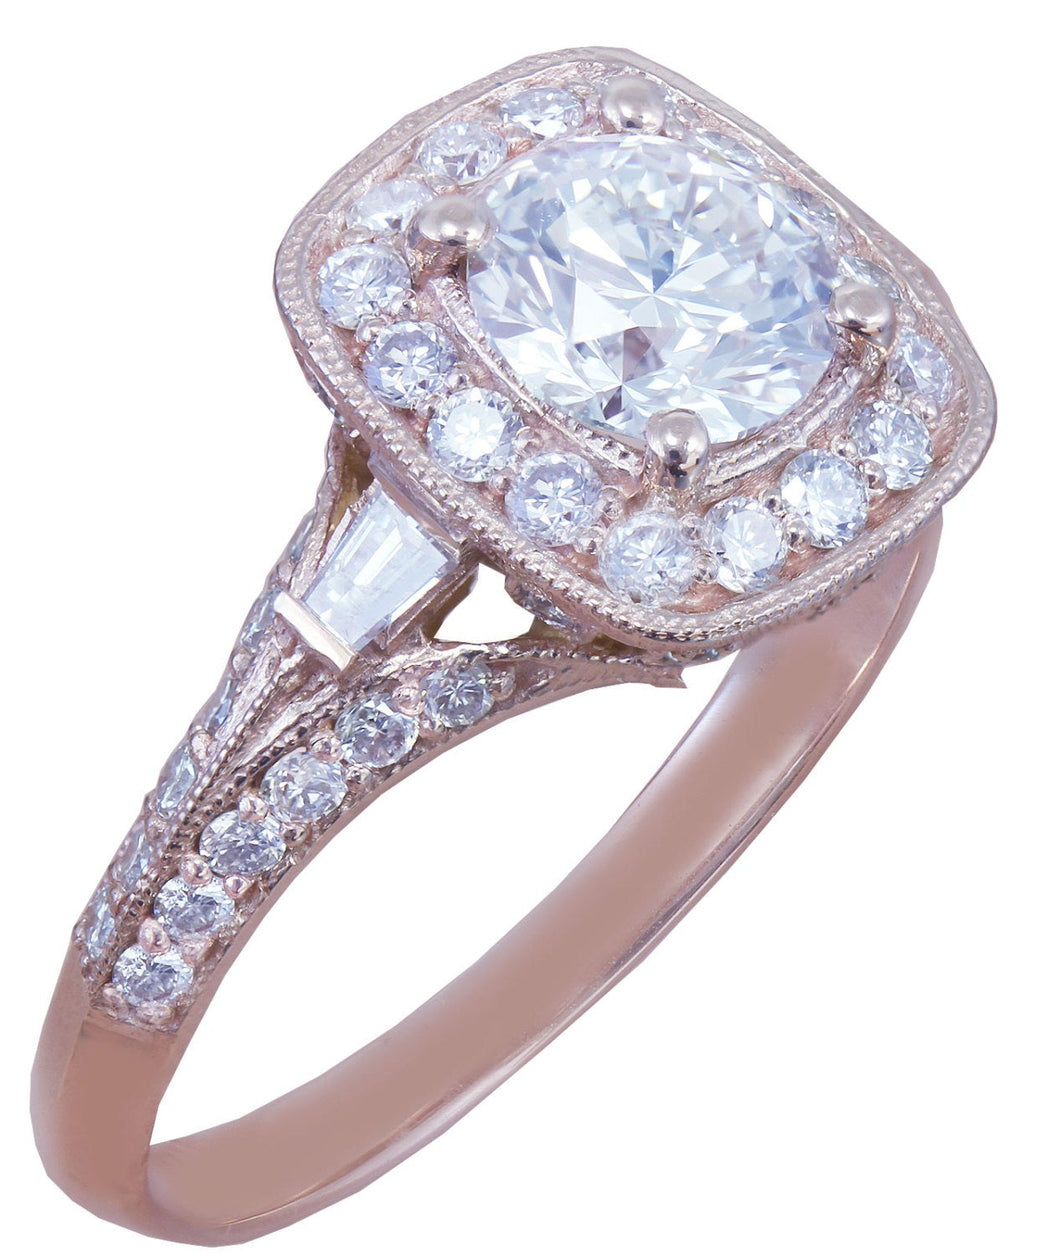 14k Rose Gold Round Cut Forever One Moissanite and Diamond Engagement Ring Antique Style Prong Wedding, Bridal, Natural Diamonds 1.95ctw